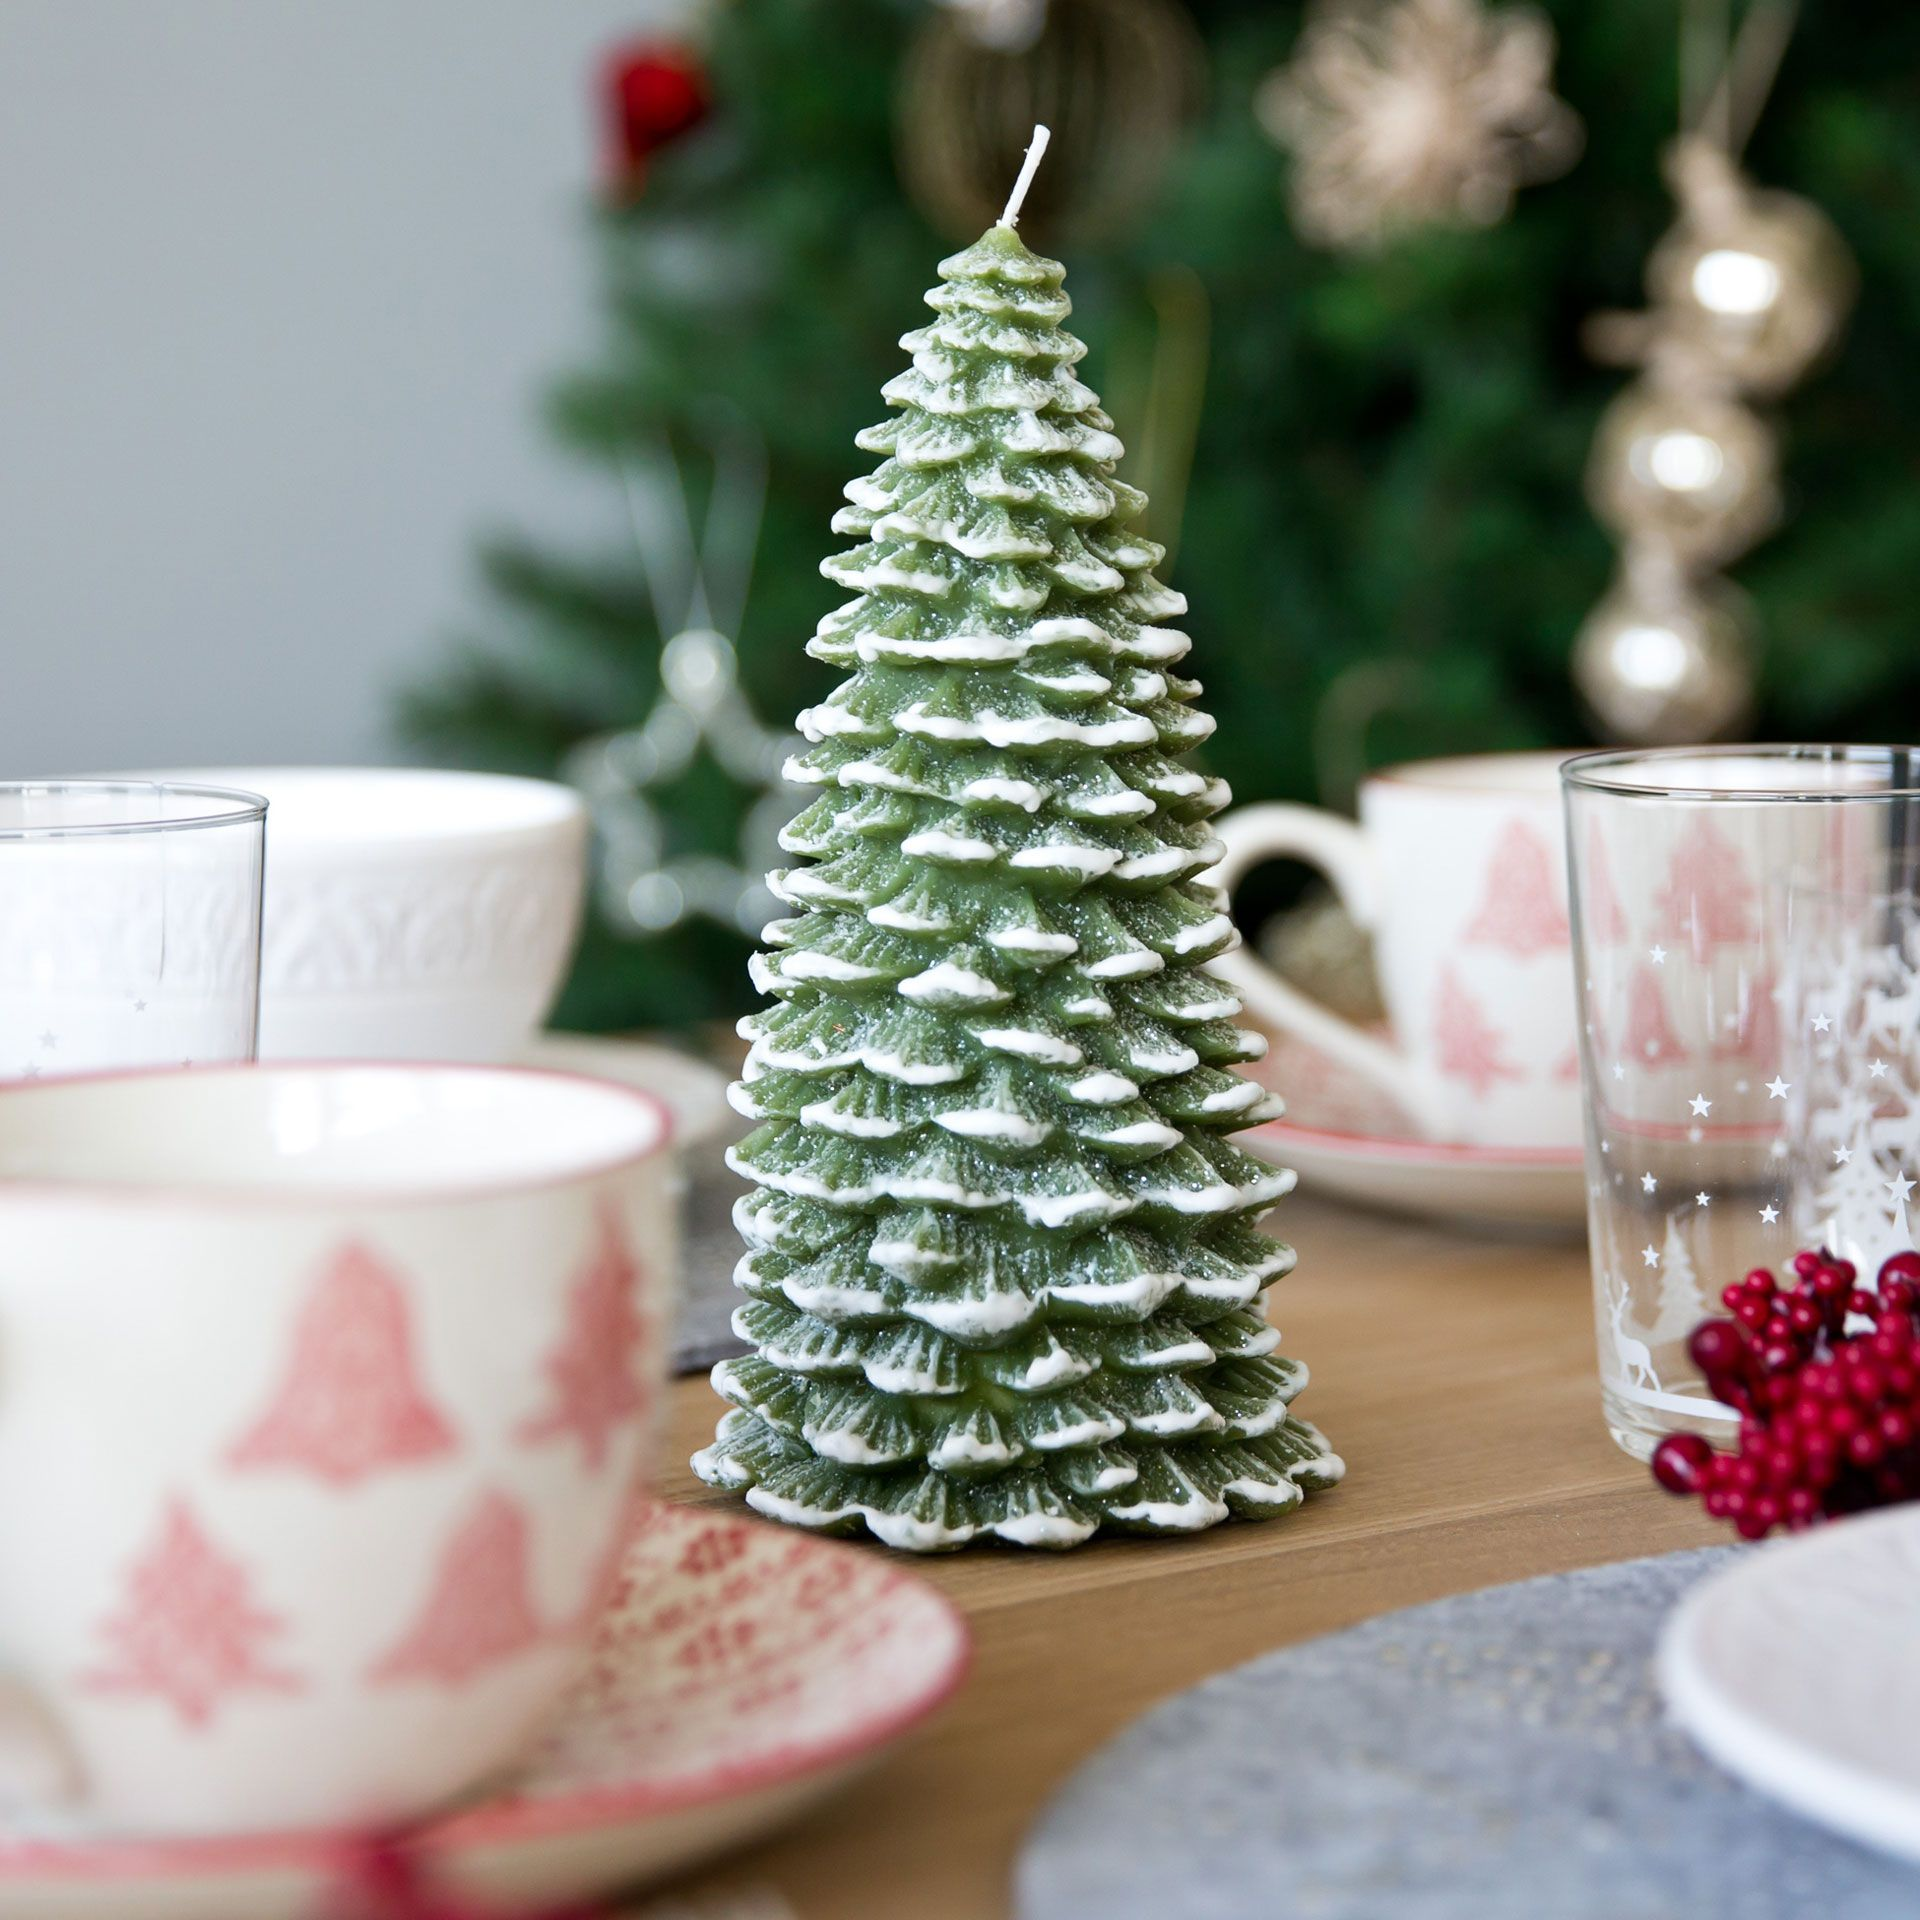 Green Fir Tree Shaped Candle Collection Christmas Zara Home Canada Candle Shapes Christmas Decorations Candle Collection